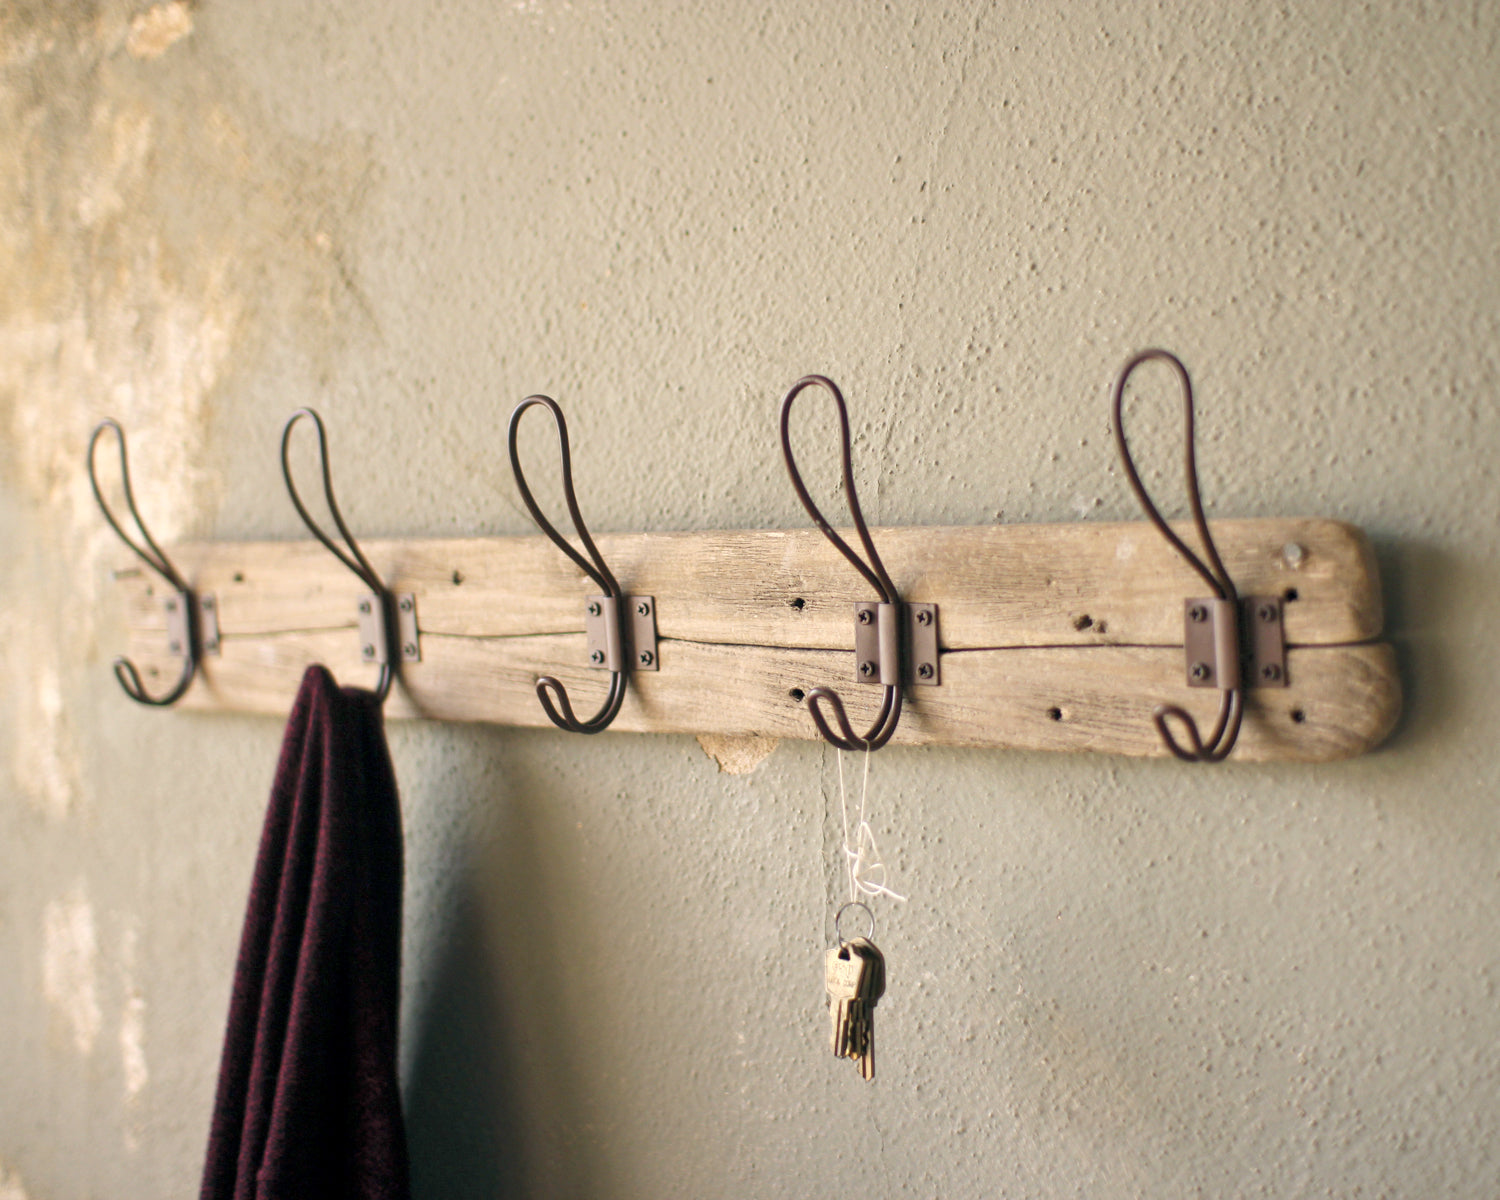 Rustic Recycled Wood Coat Racks With Metal Hooks - Set of Two